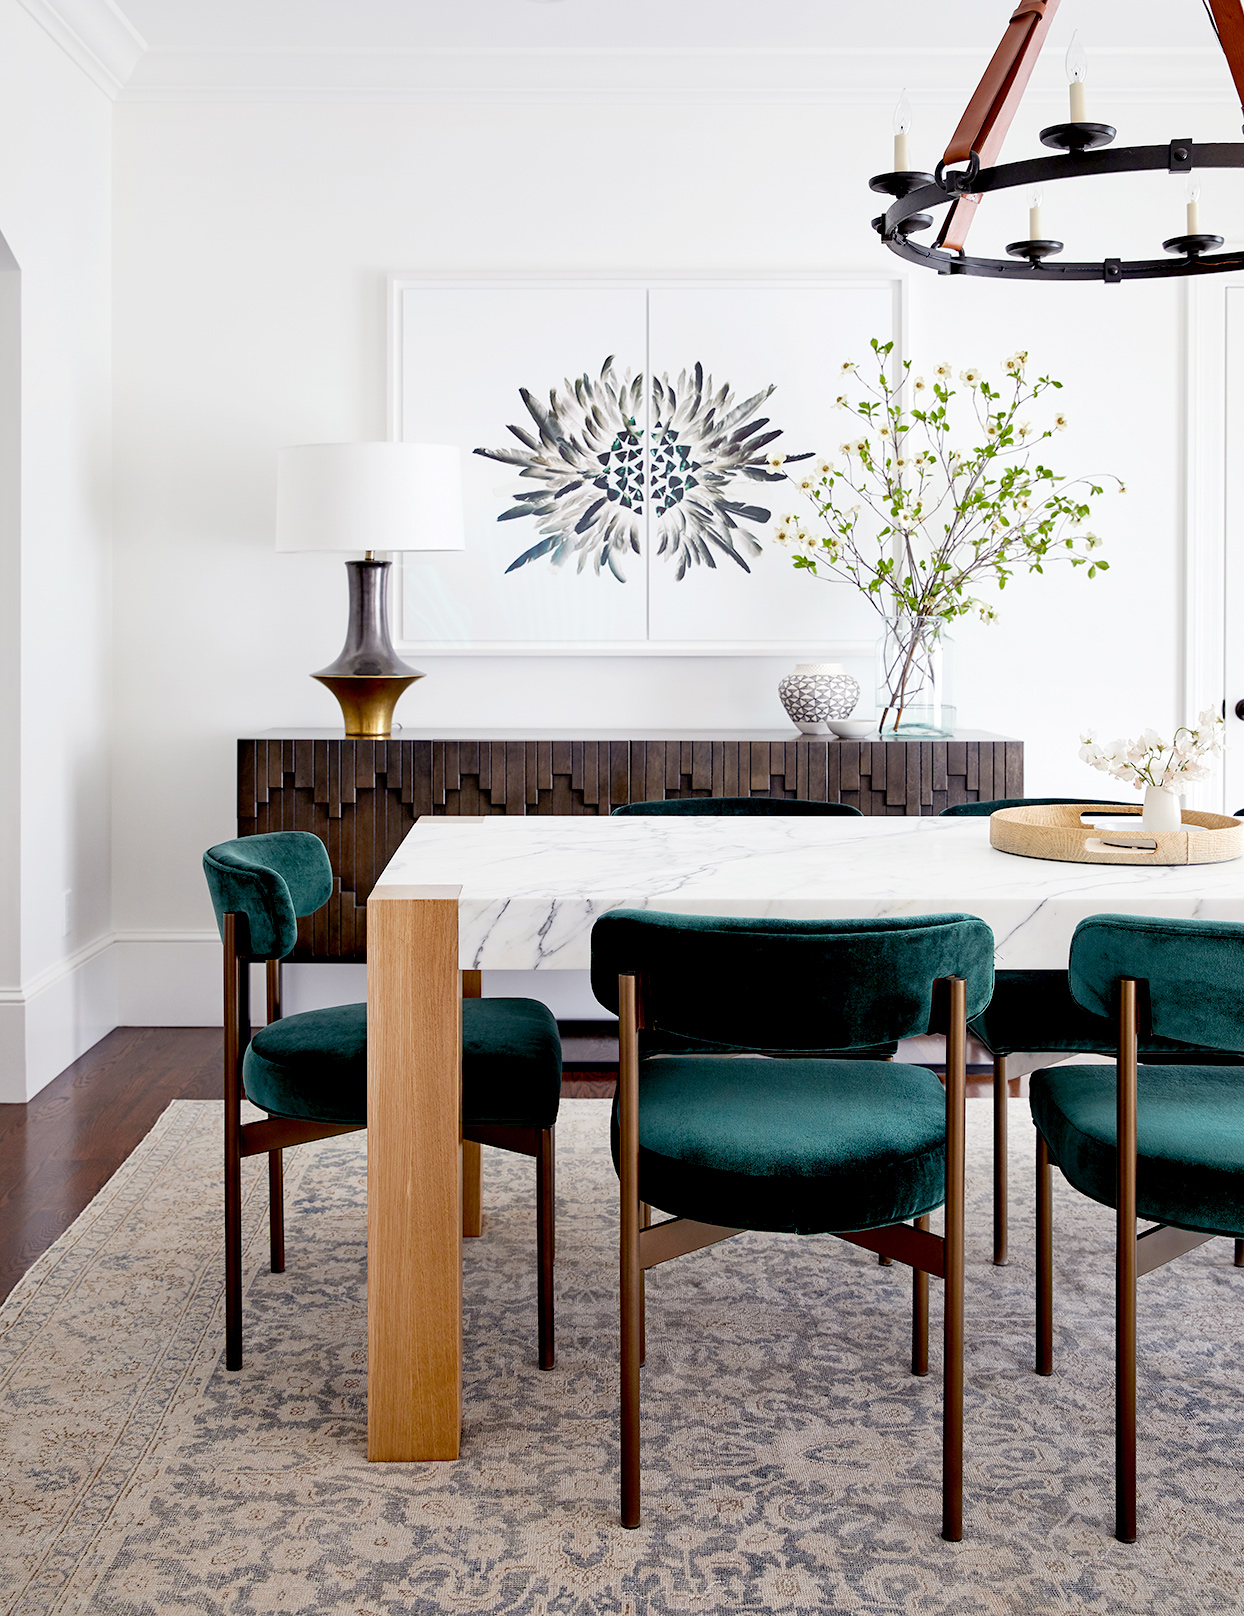 Dining area with marble table top and dark green chairs